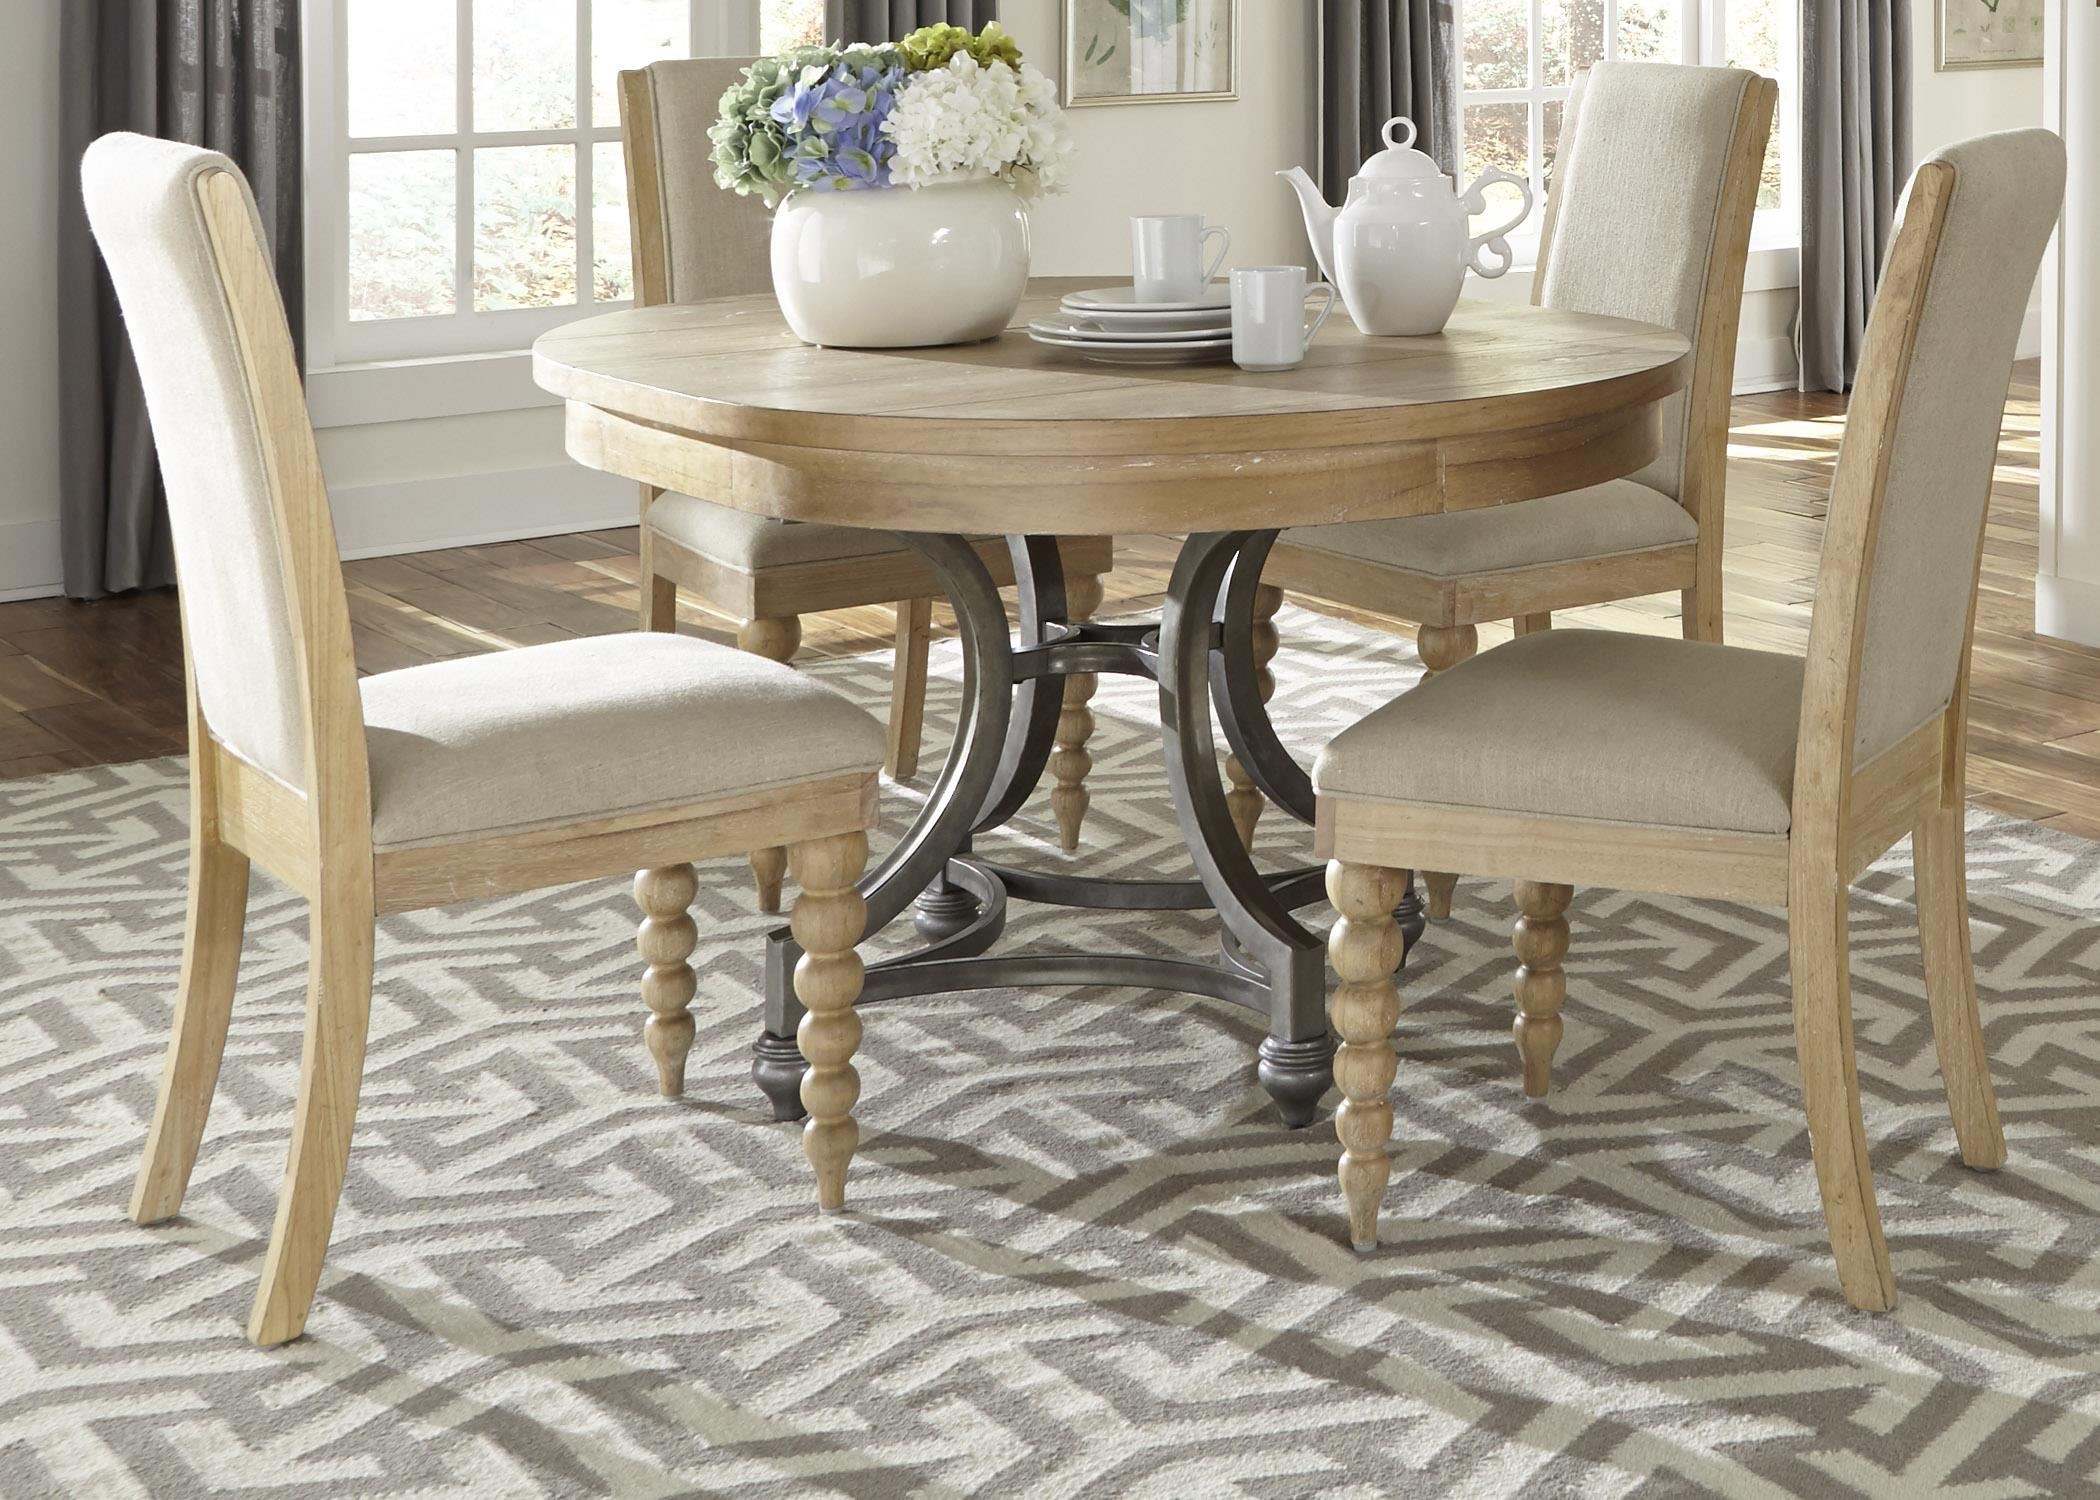 Liberty Furniture Harbor View Round Table Chair Set - Item Number: 531-DR-05ROS